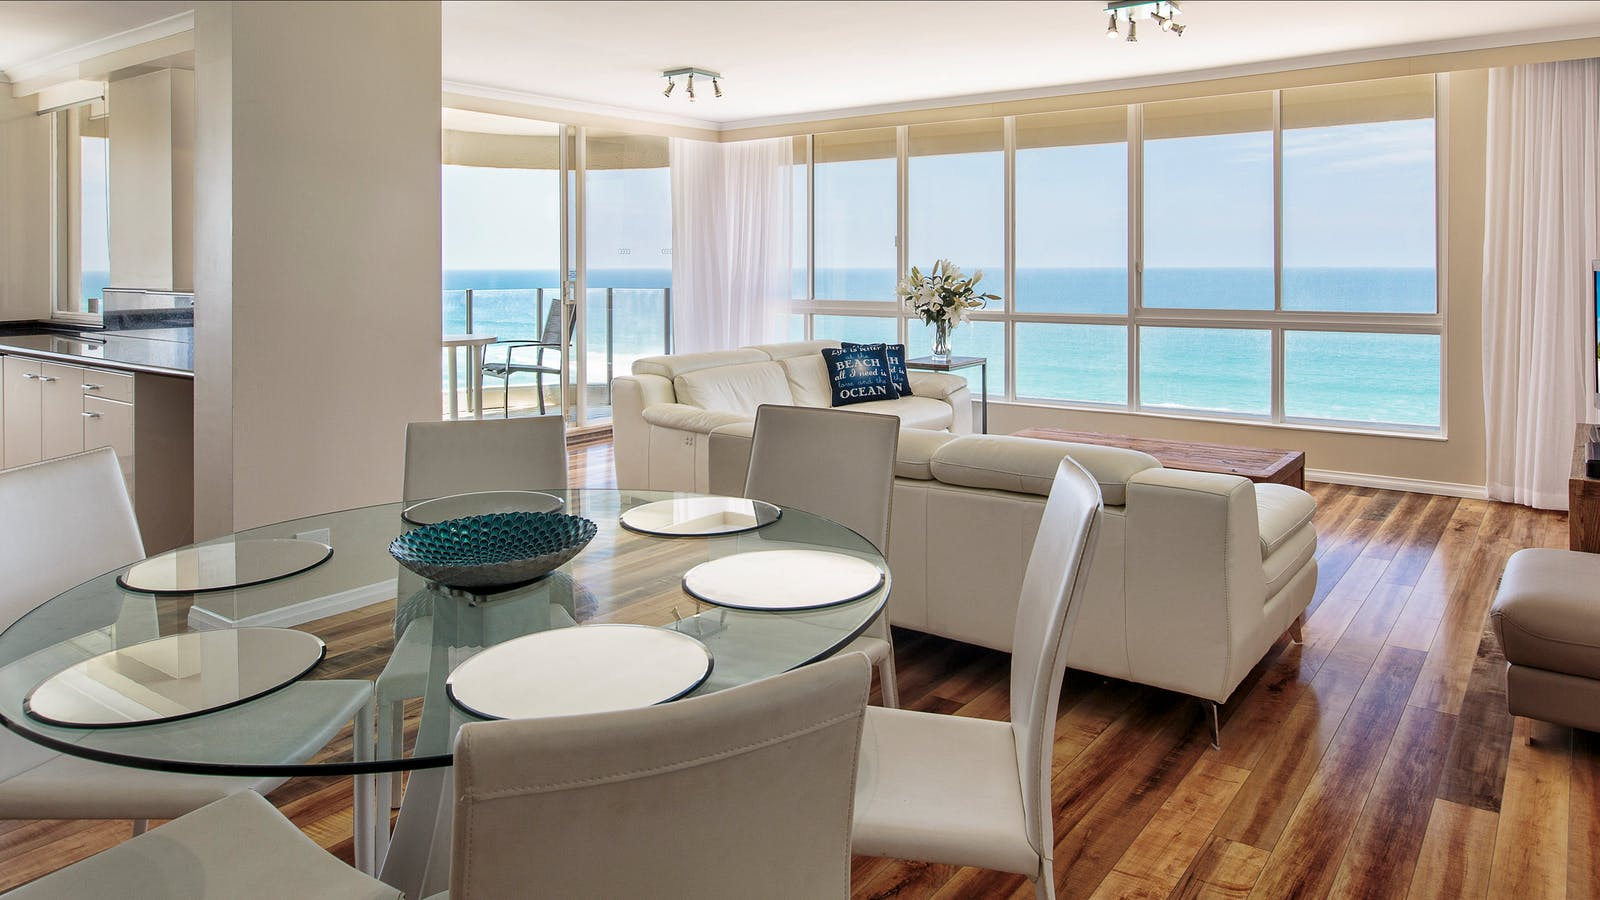 3 bedroom ocean view, beachfront apartment, Surfers Paradise, Gold Coast, Queensland, family holiday